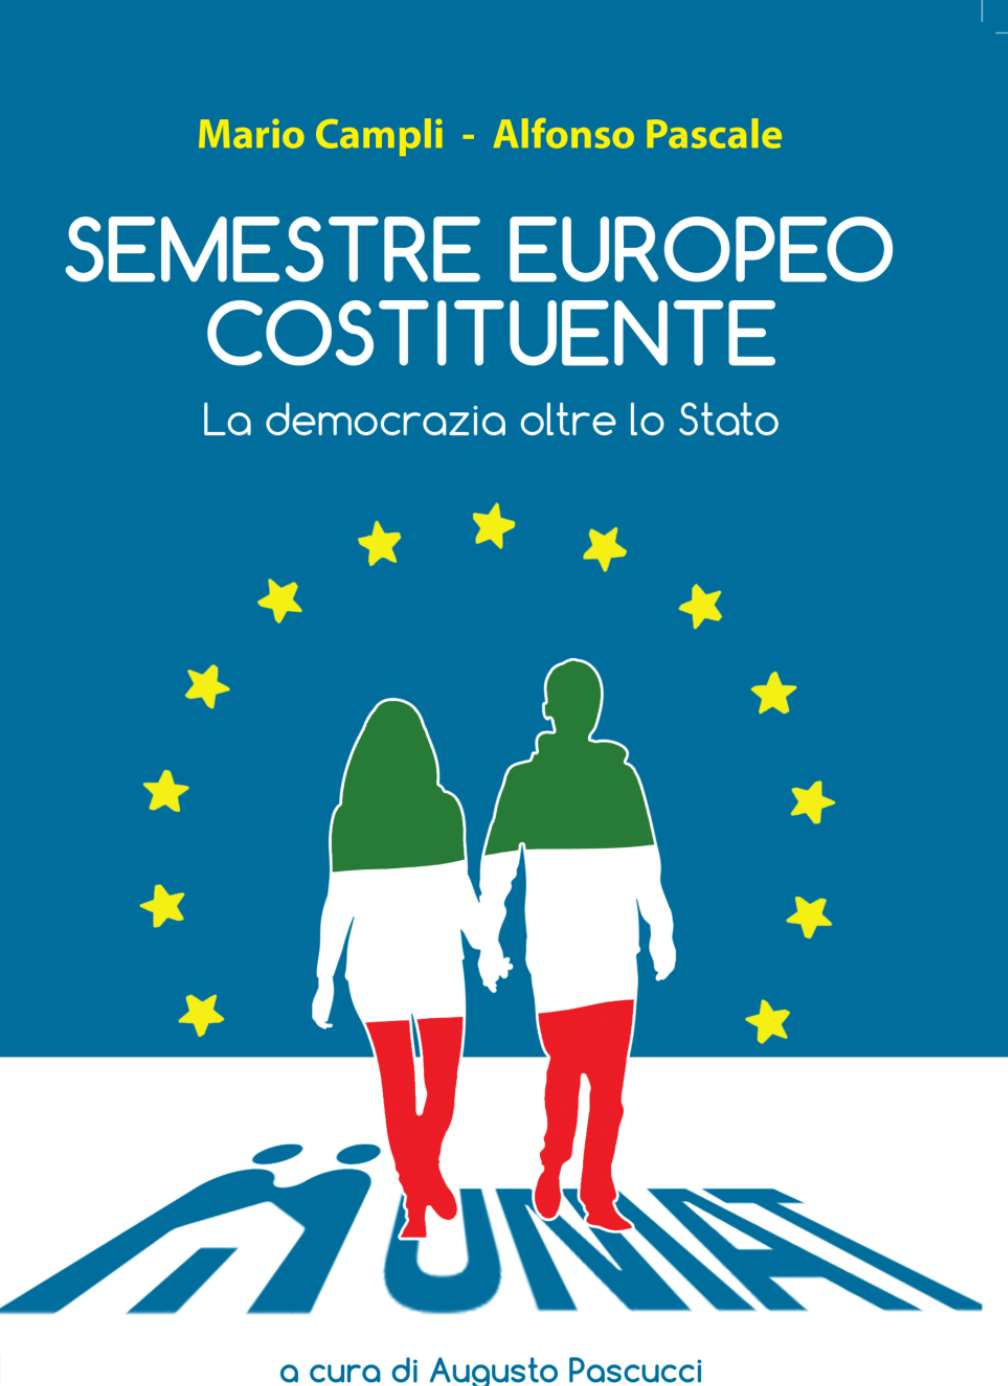 Semestre Europeo Costituente